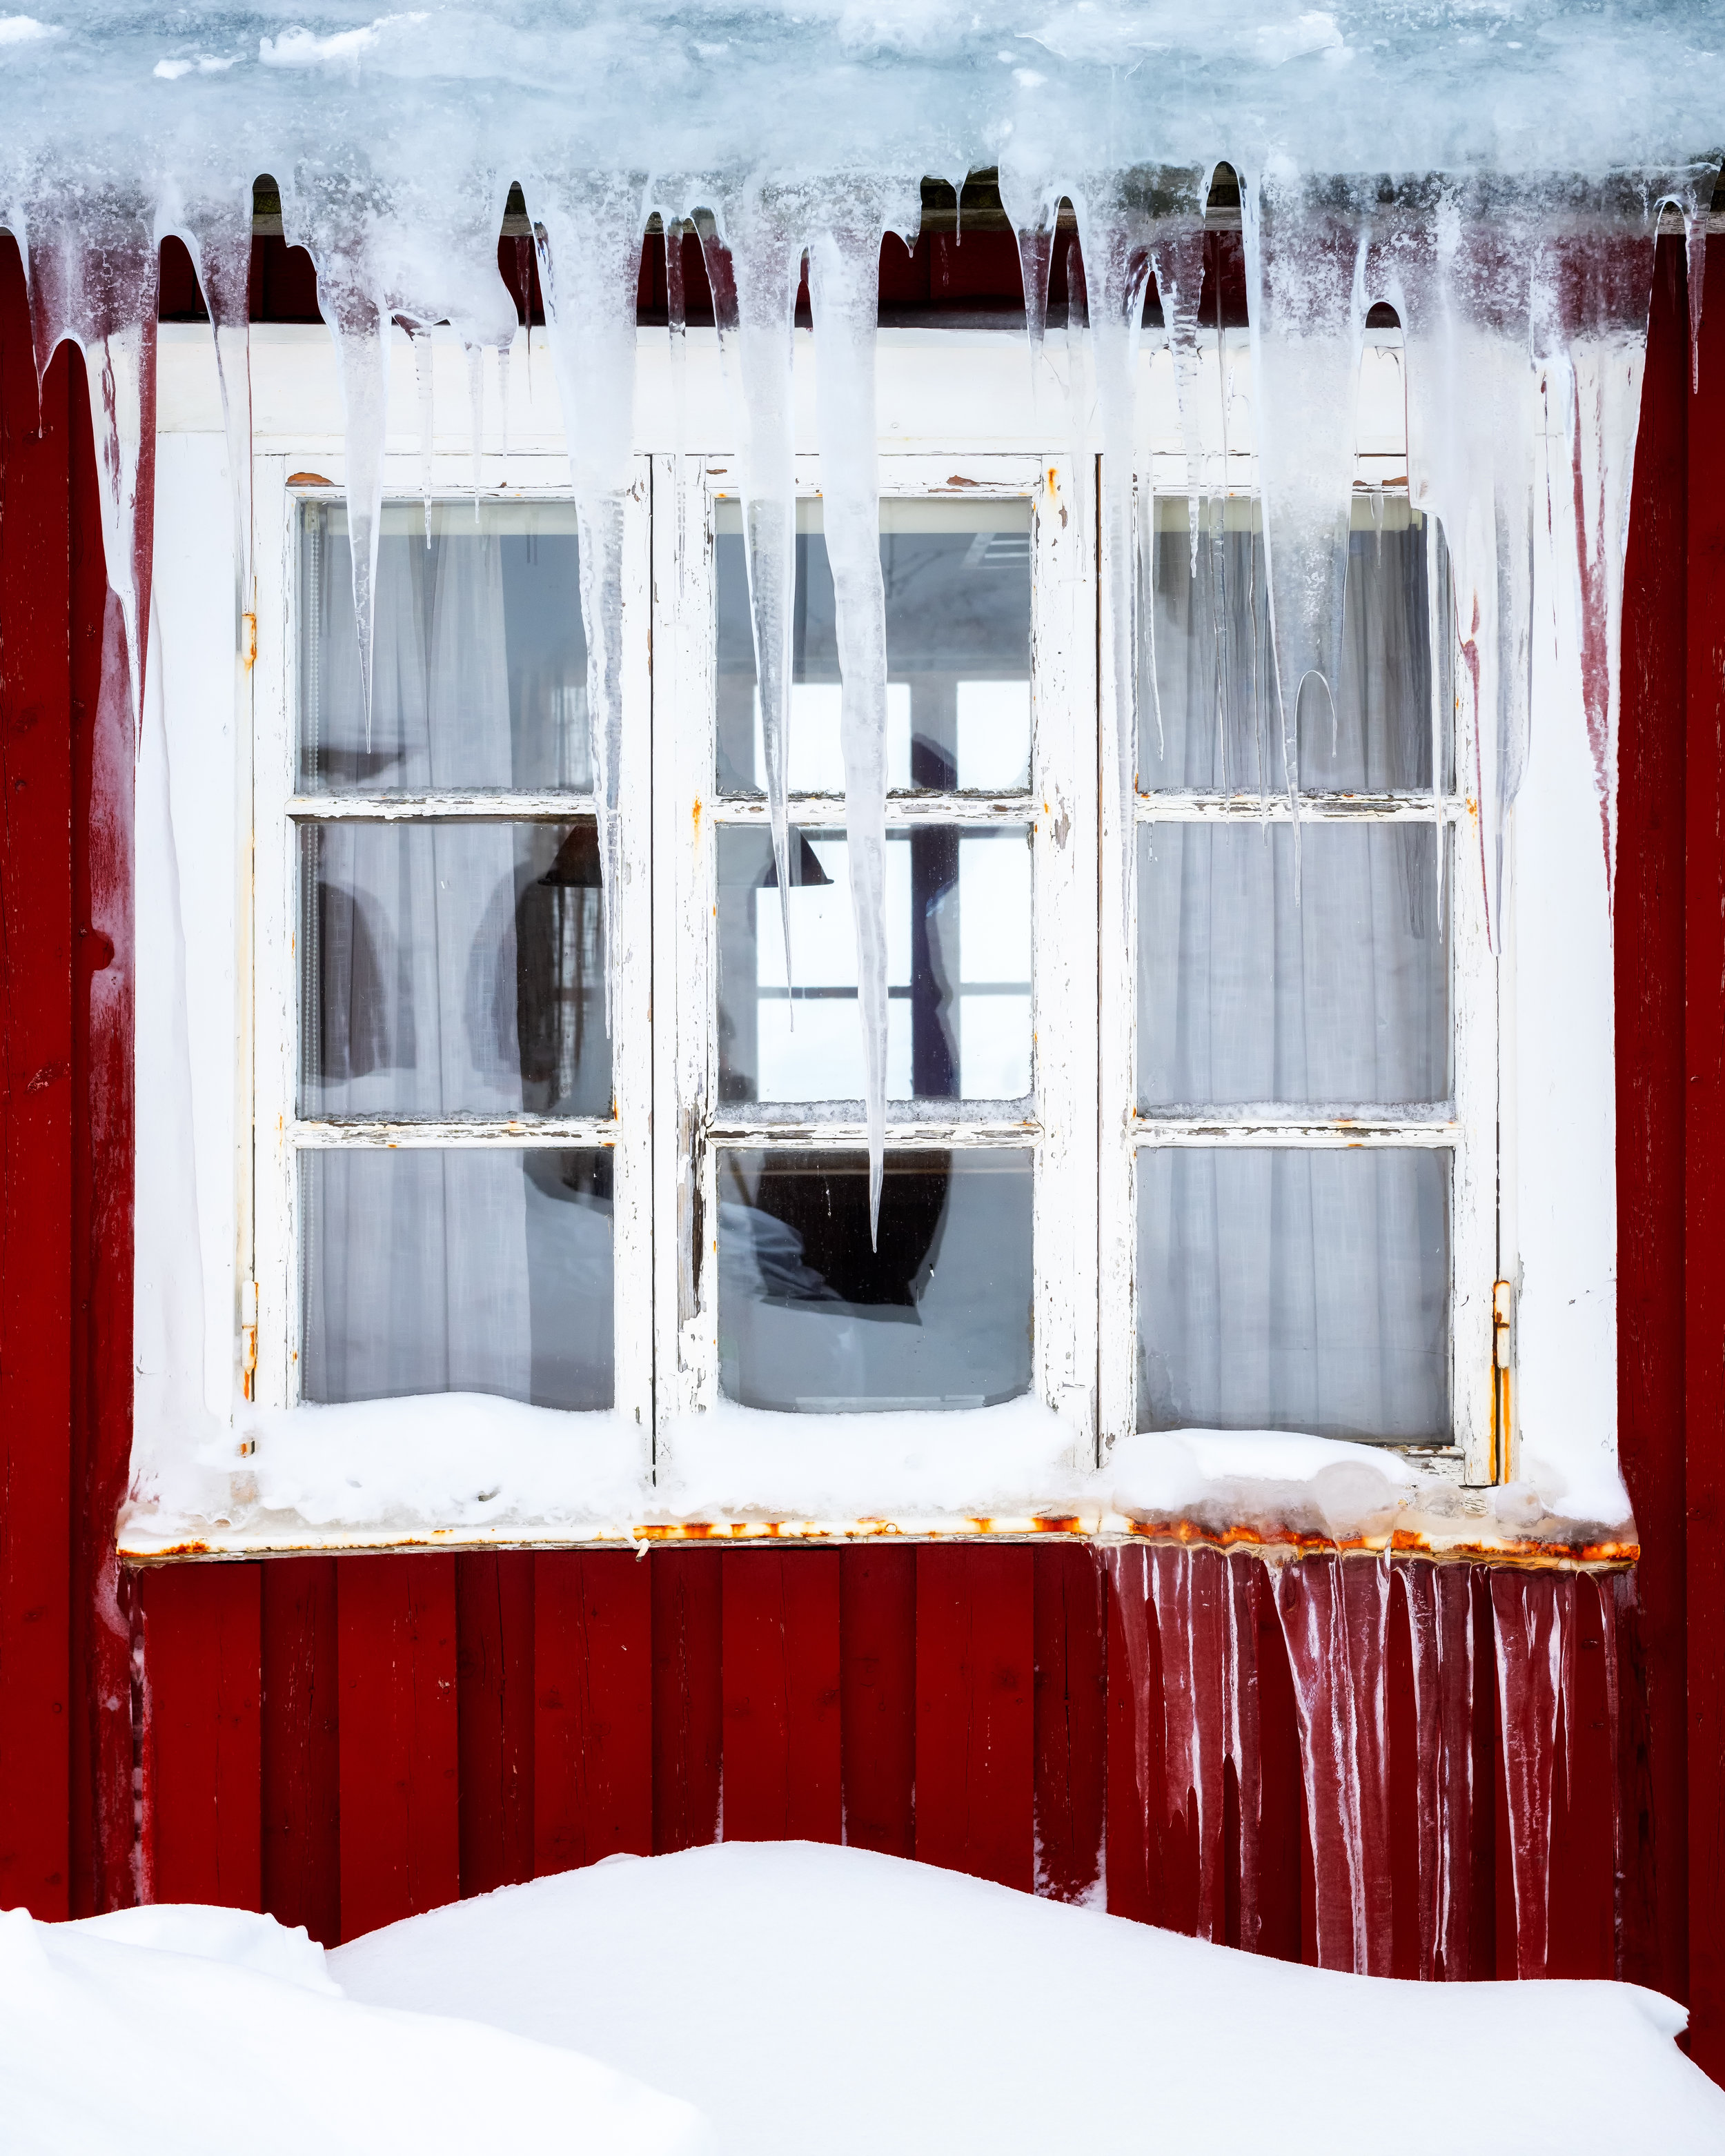 Icicles on a robu window, Hamnøy.